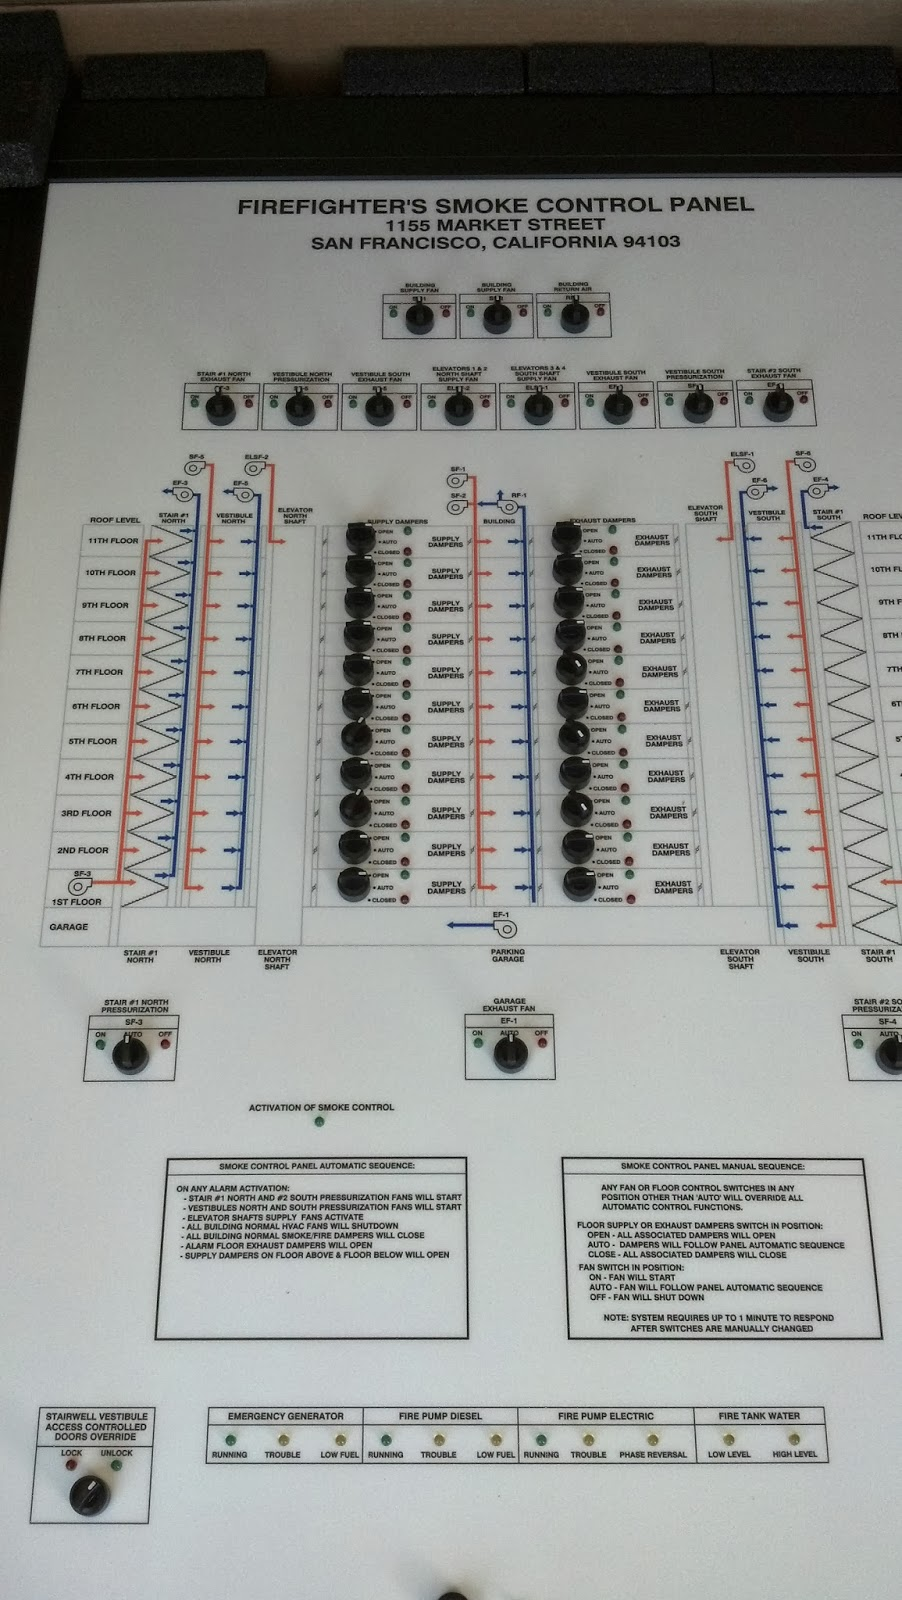 2013 03 01_12 58 52_166 uukl smoke control for fire alarms fire alarms online fci 7100 annunciator wiring diagram at n-0.co